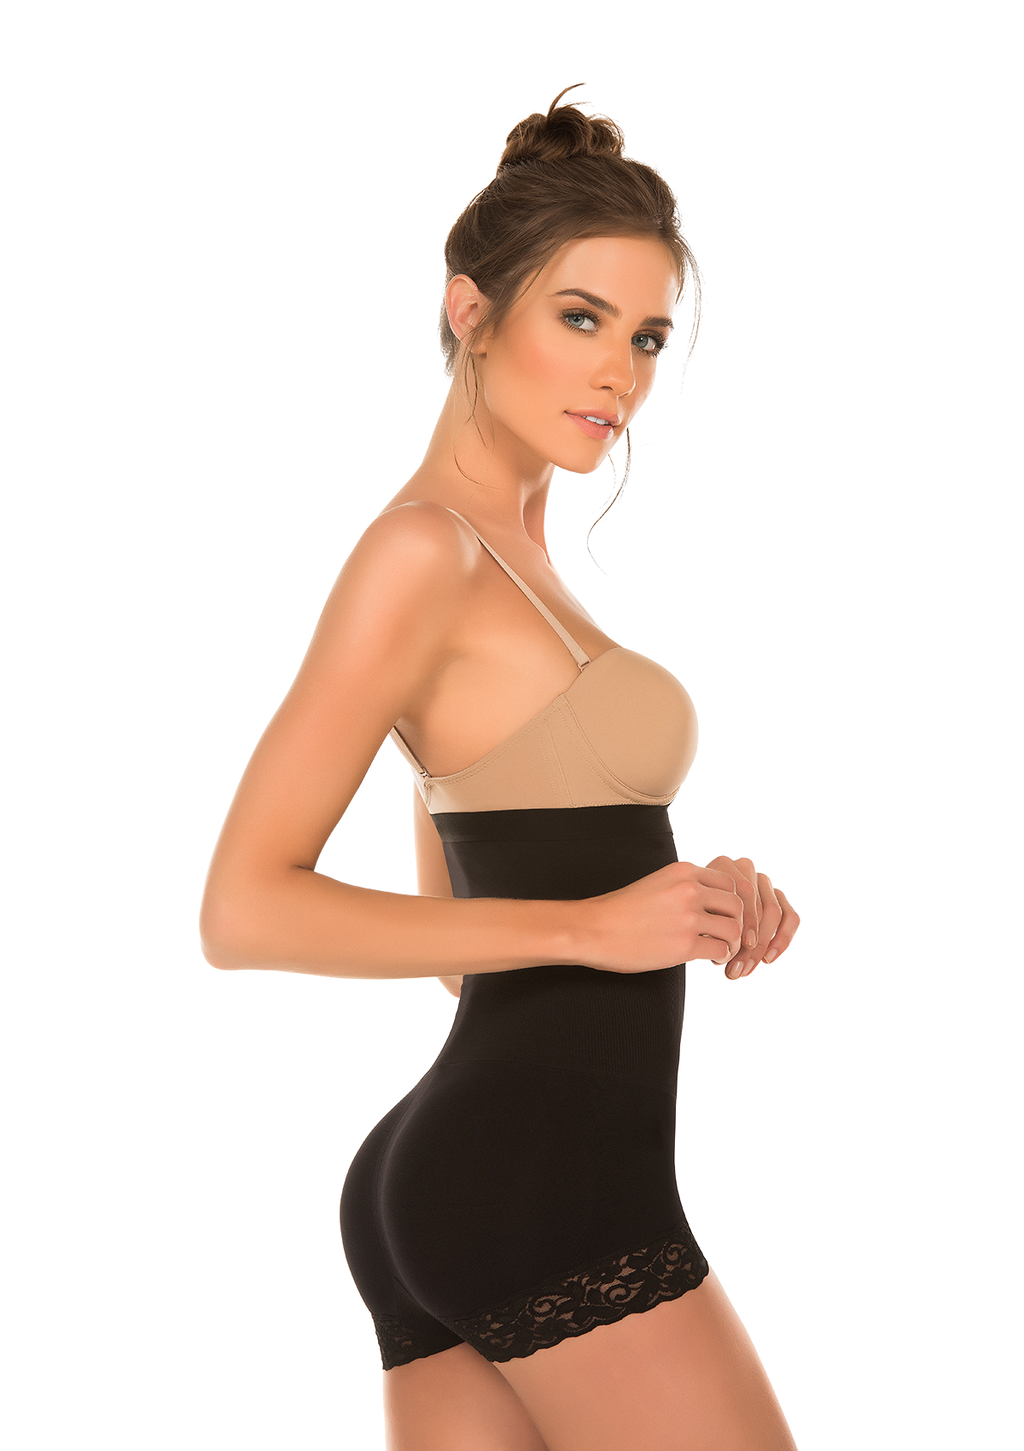 Bóxer Alto Reductor Tipo Body  Seamless Color Negro - evoZZe